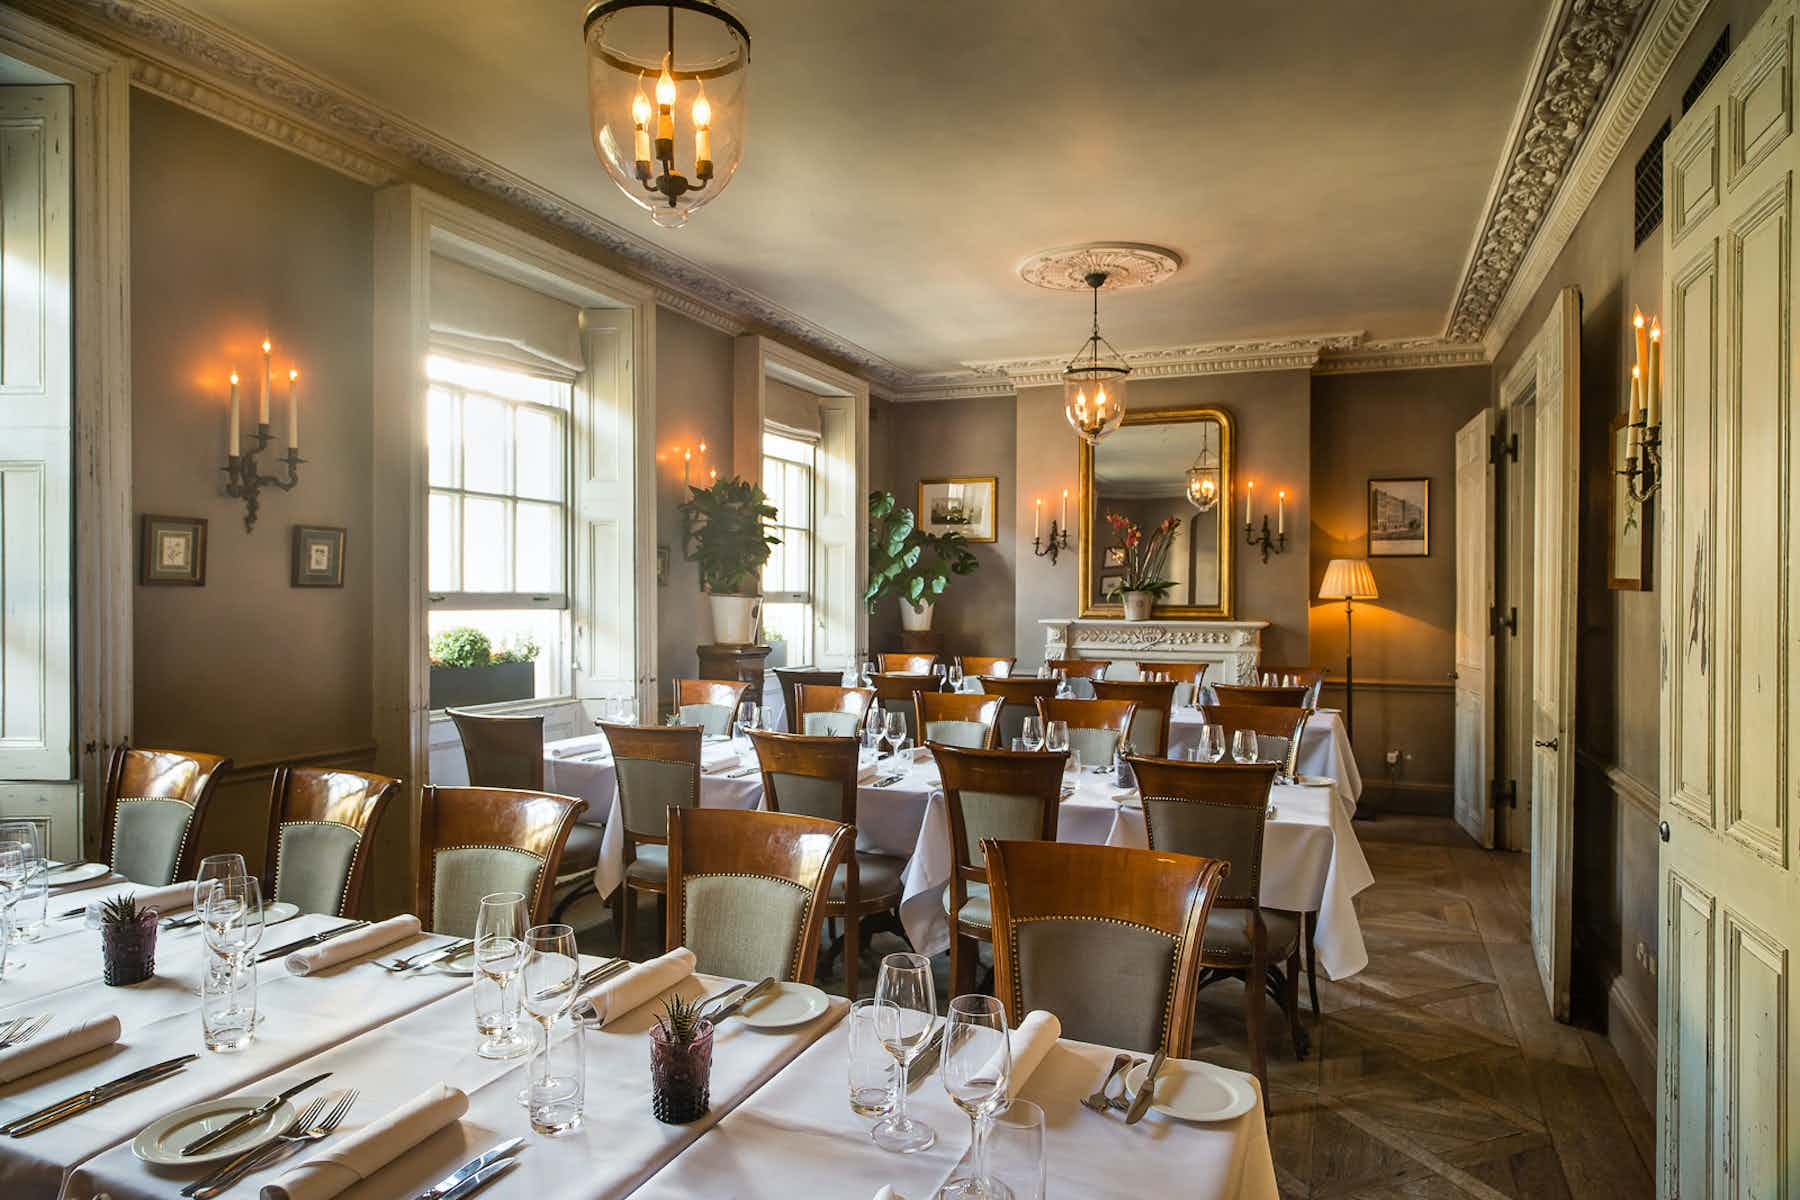 Main & Small Dining Room, The Thomas Cubitt